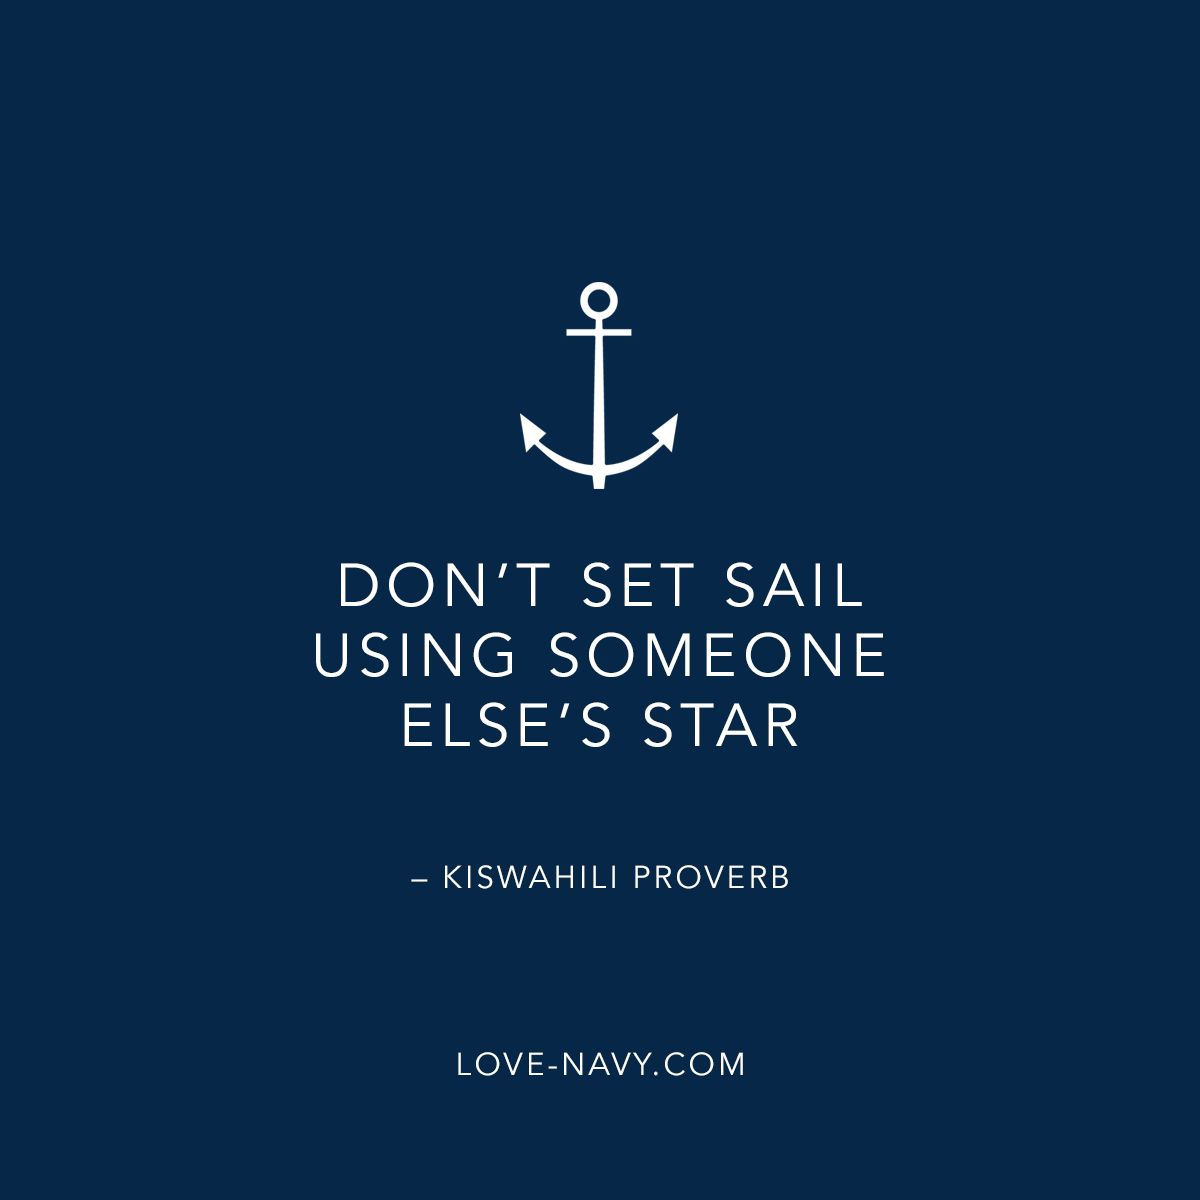 Dont Set Sail Using Someone Elses Star Kiswahili Proverb Love